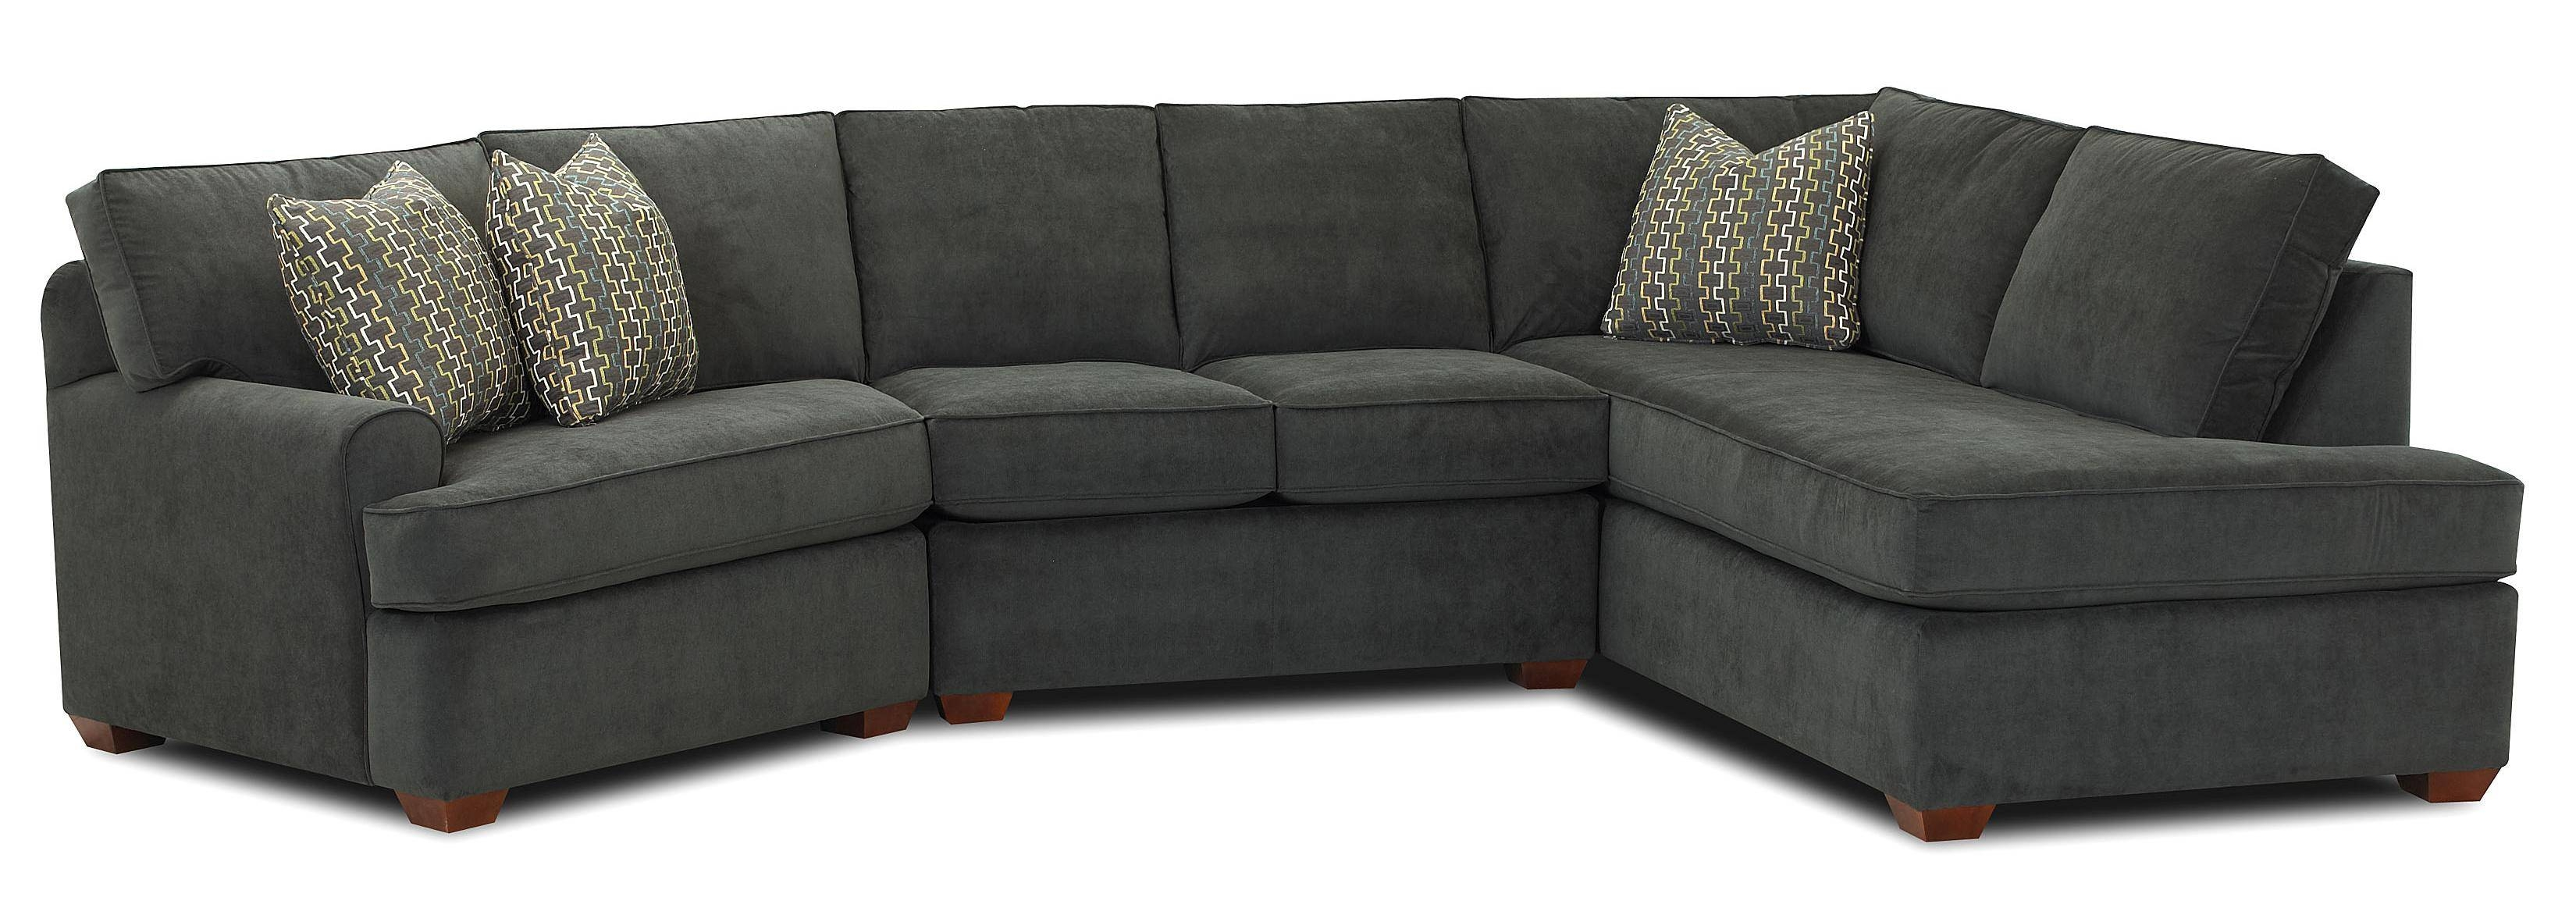 the edward angled sectional sofa mathwatson rh mathwatson com